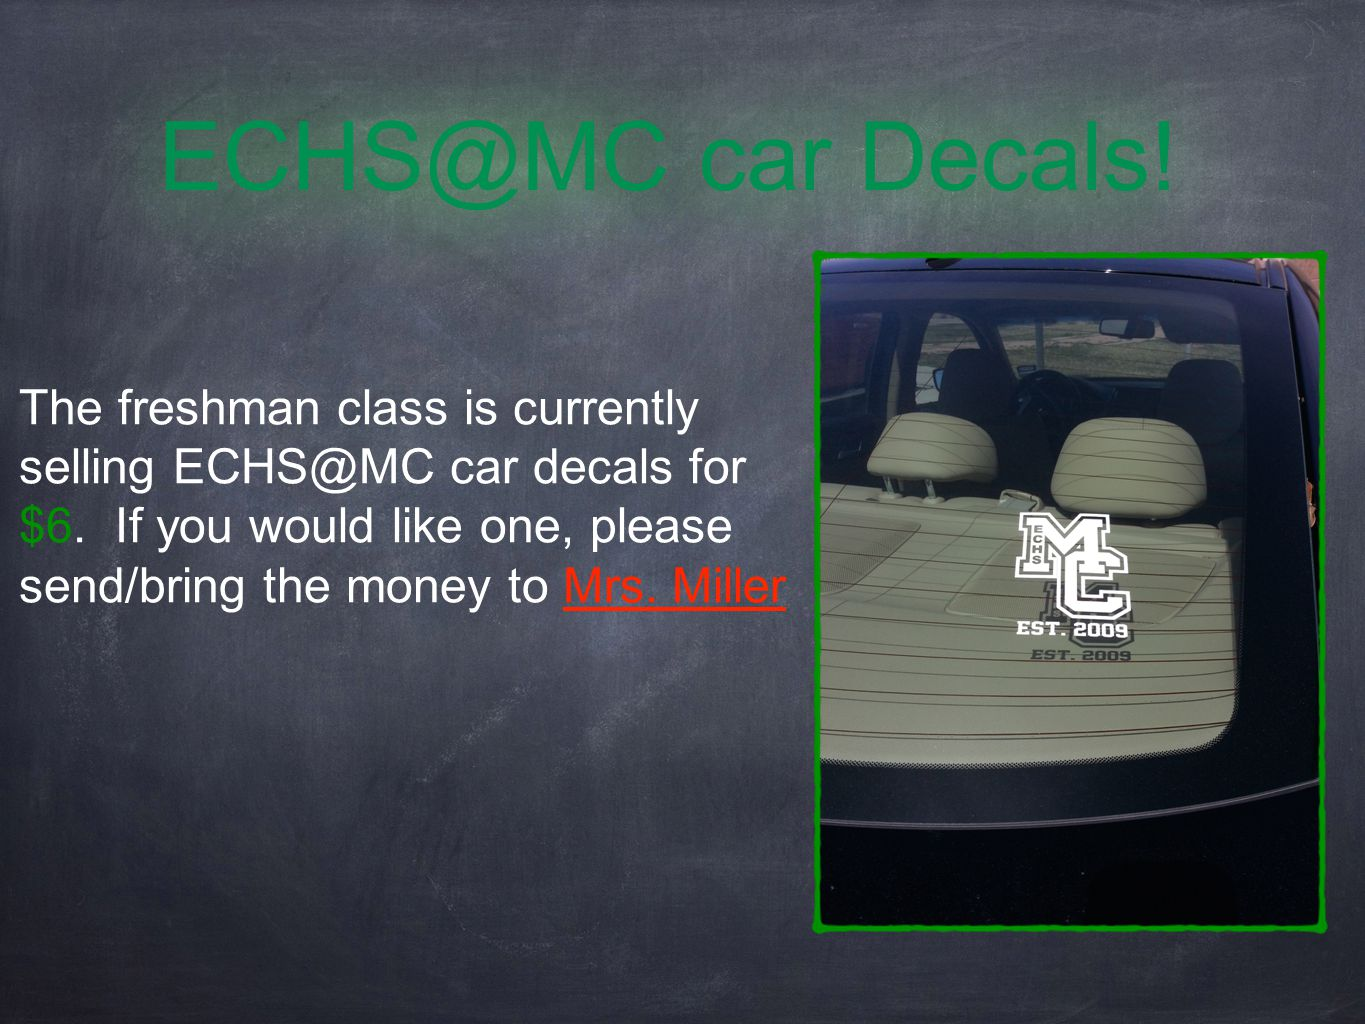 ECHS@MC car Decals. The freshman class is currently selling ECHS@MC car decals for $6.